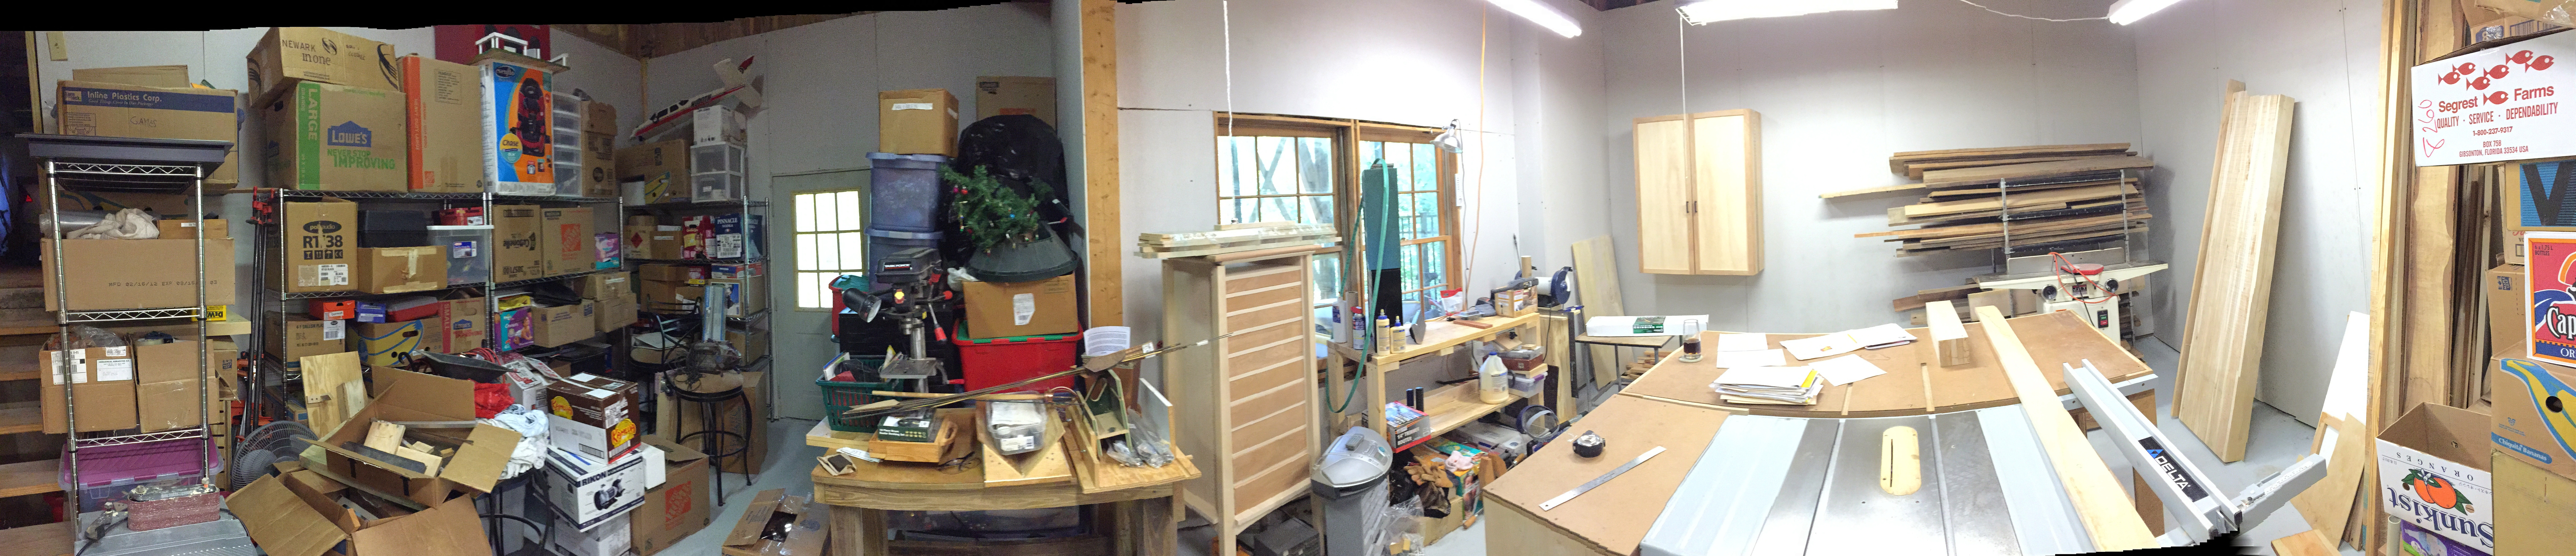 Panorama of the shop with my new iPhone 6 :-)